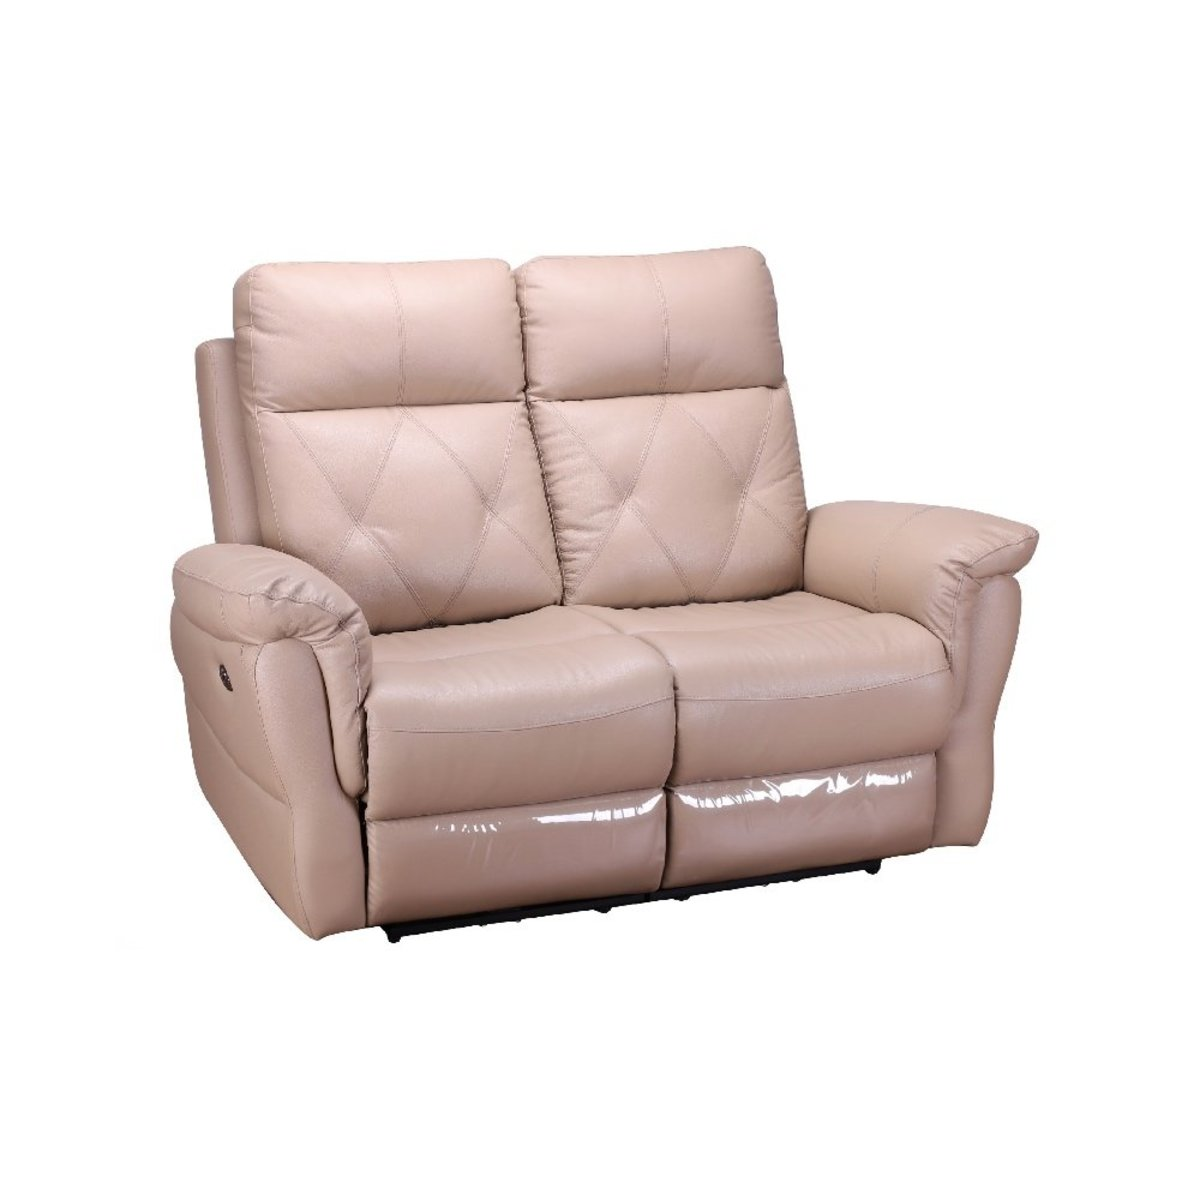 2 seater sofa with double electric incliners mechanism